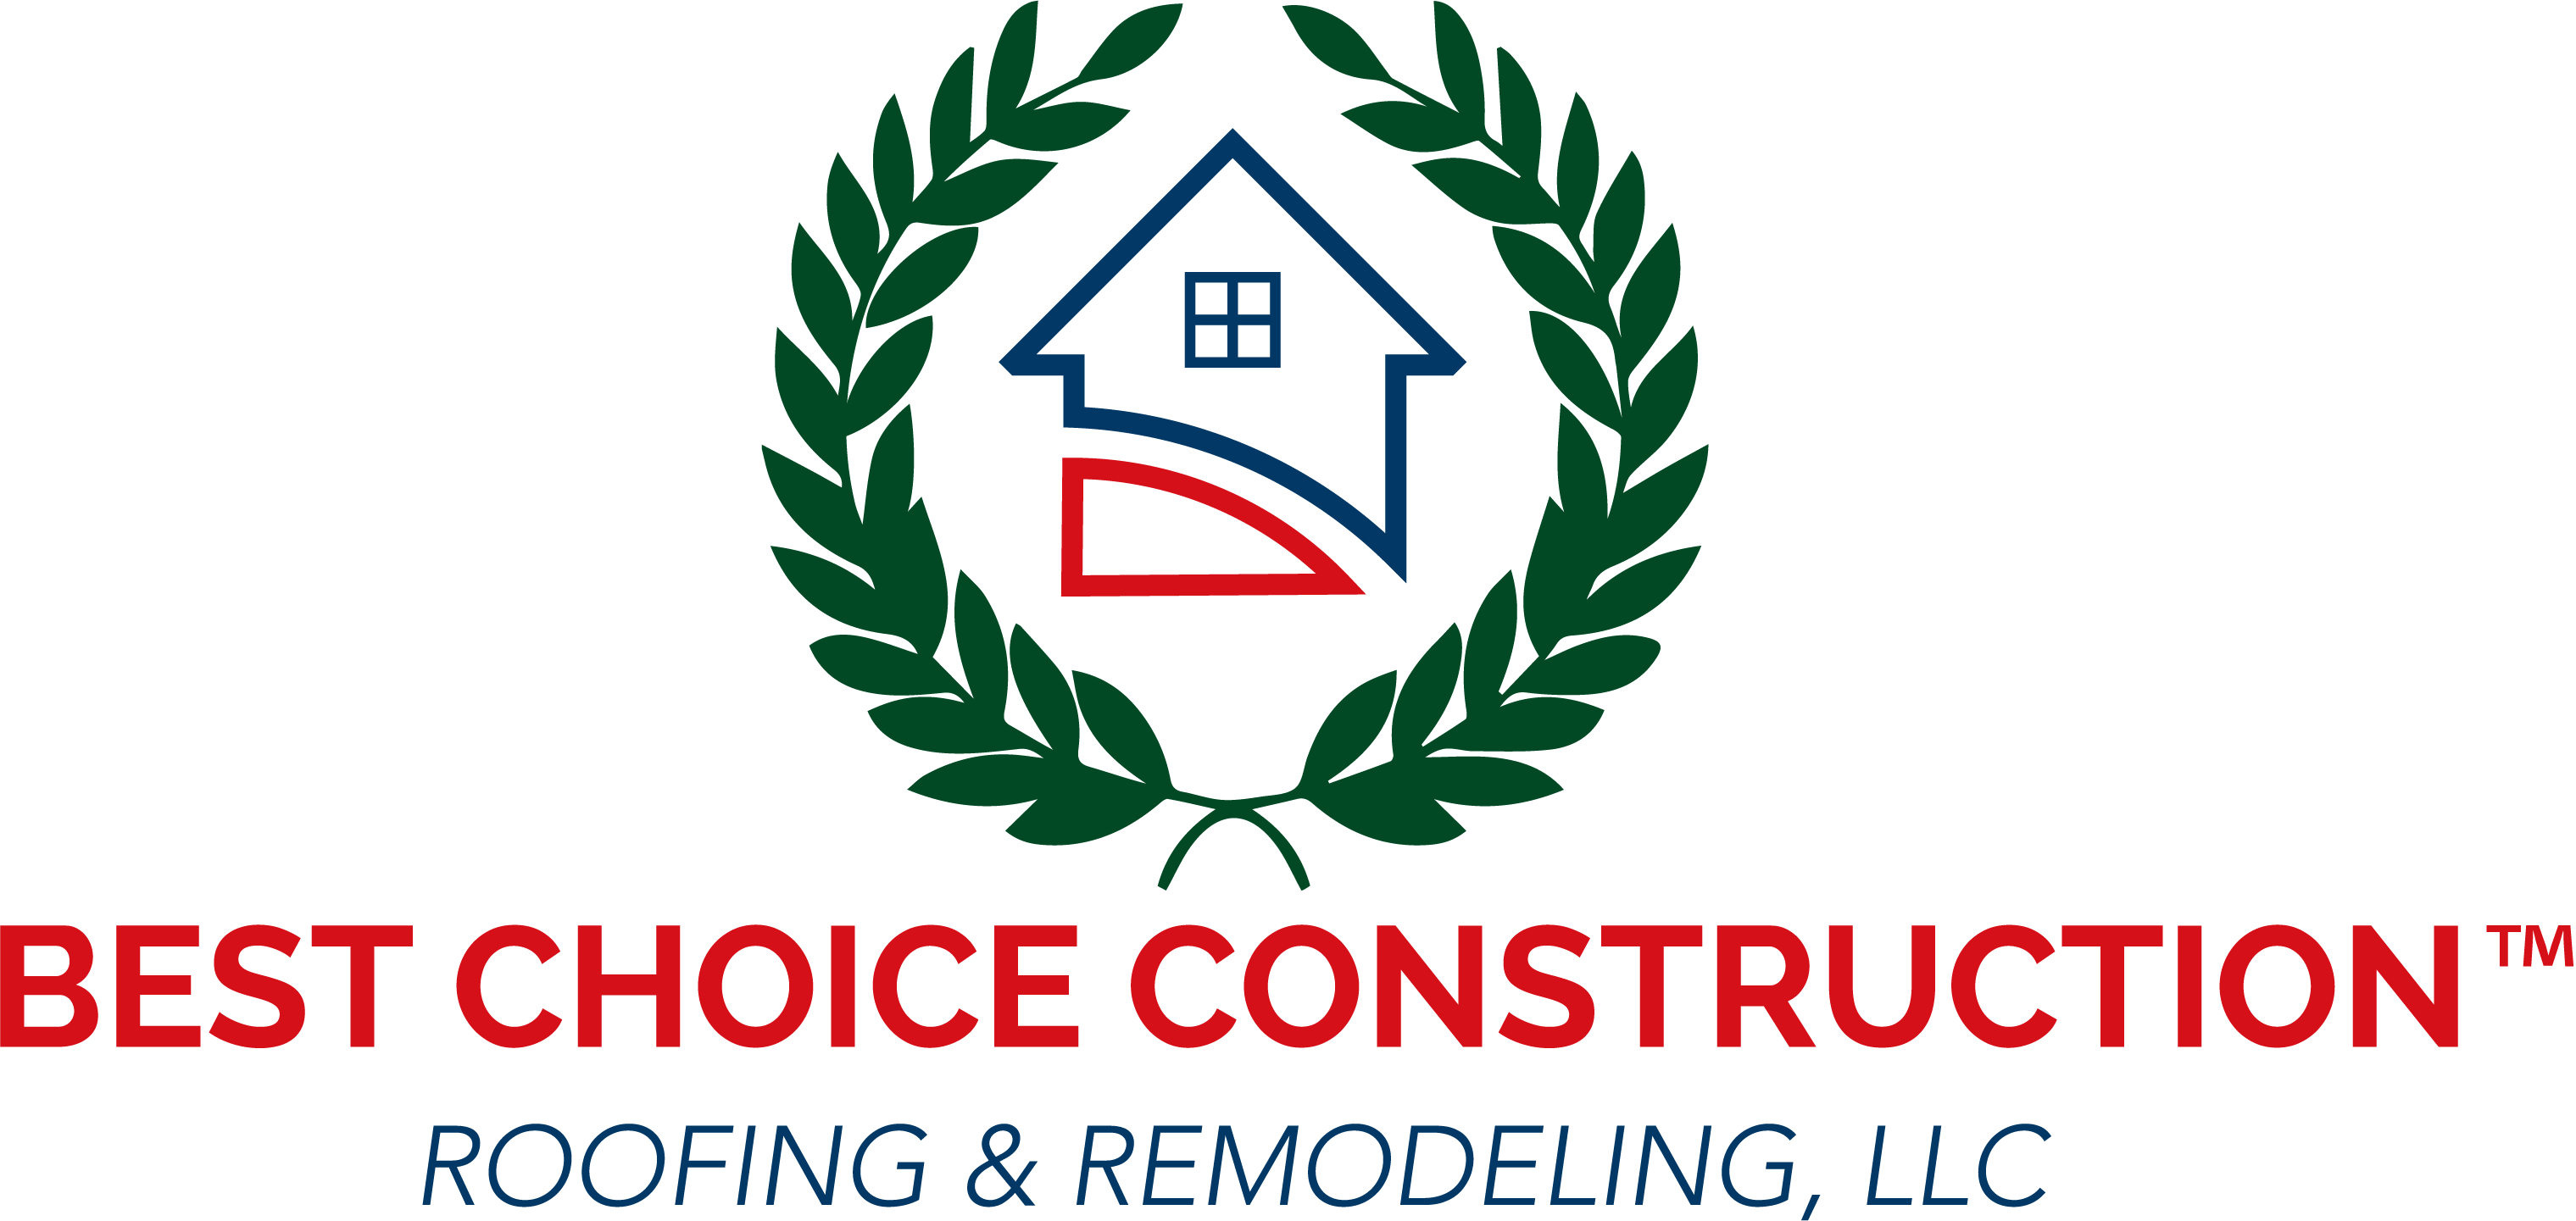 Best Choice Construction